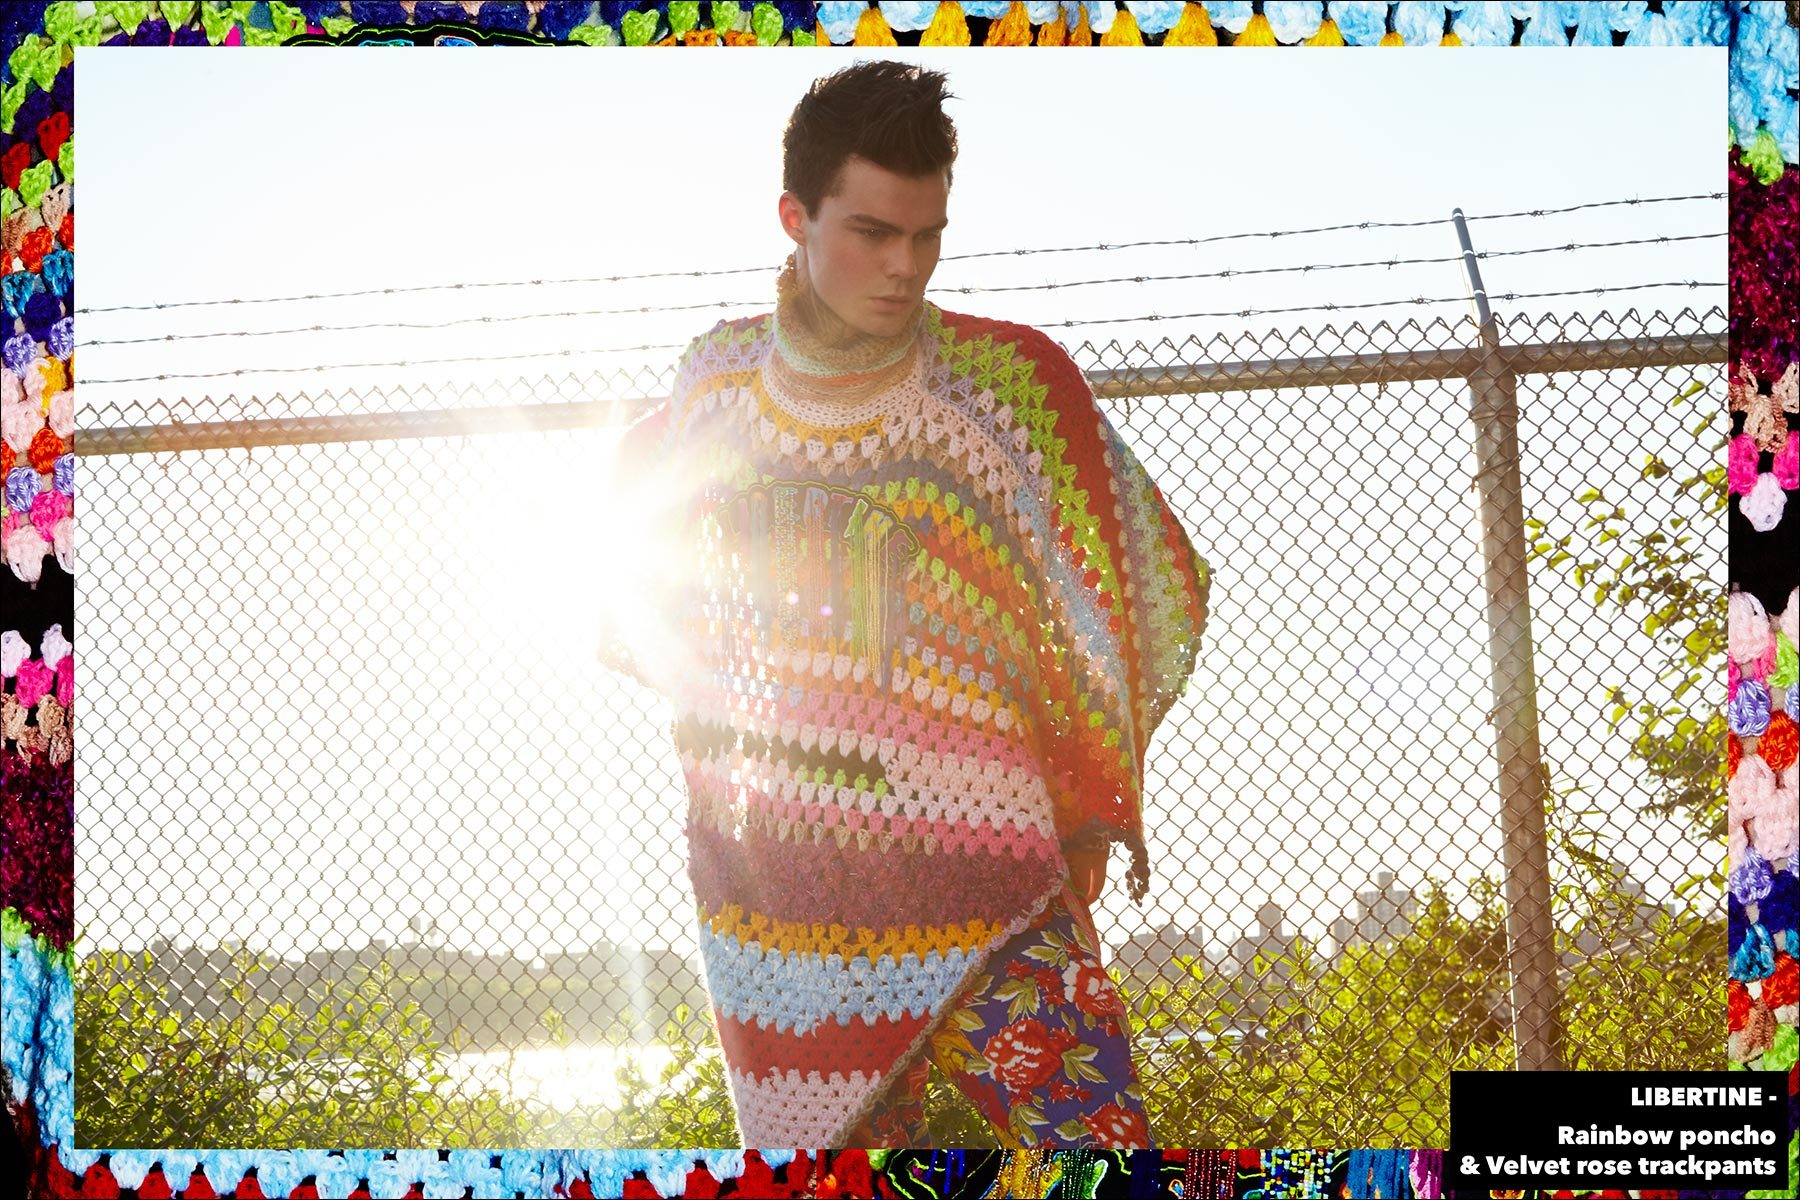 Model Jonathan Normolle, from New York Model Management, wears a Libertine Rainbow poncho. Photographed by Alexander Thompson for Ponyboy magazine New York.